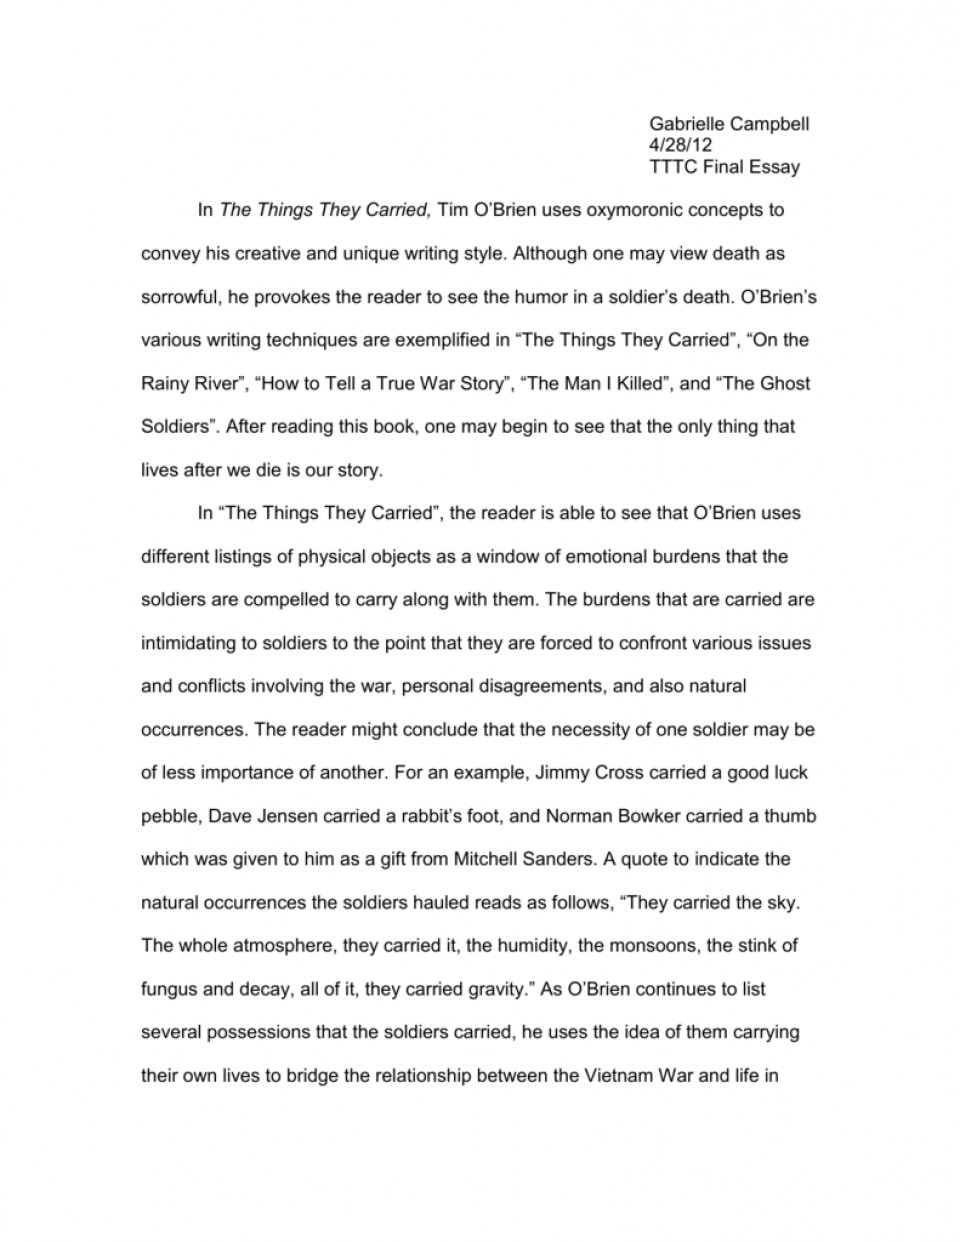 001 The Things They Carried Essay Example 008028277 1 Incredible Introduction Questions Prompts 960